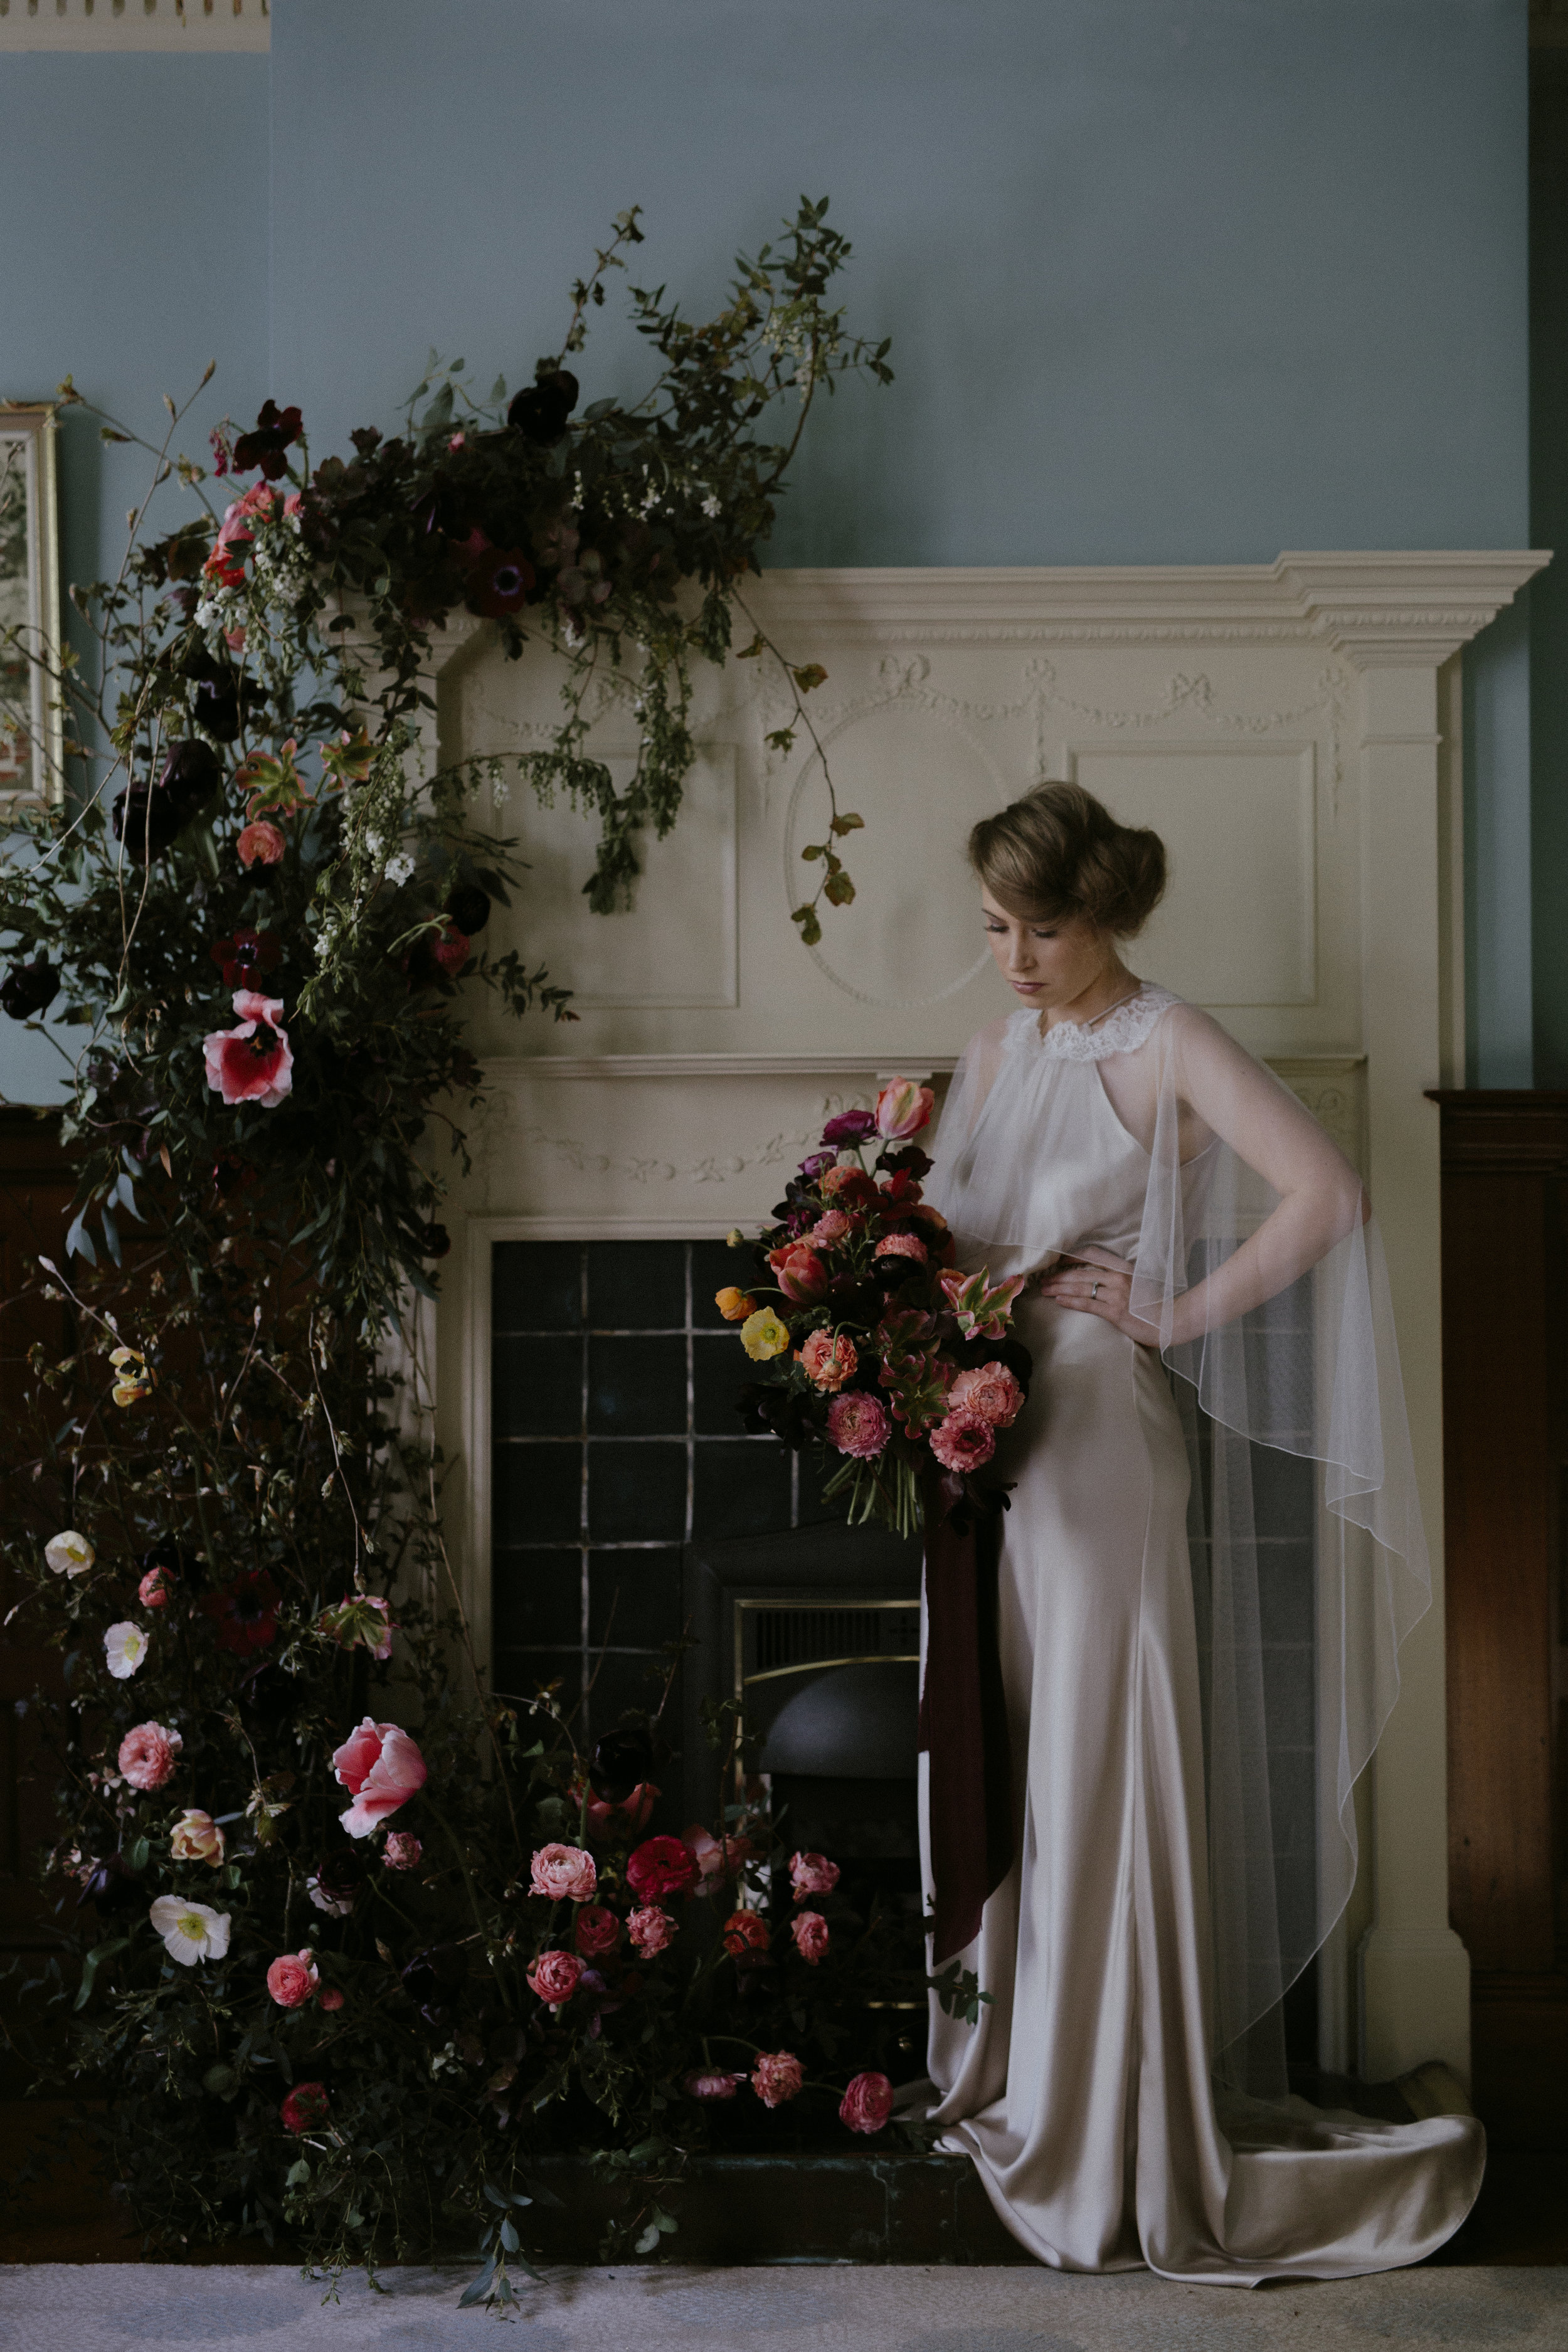 Agnes-and-bee-Kate-Beaumont-wedding-dresses-Ruth-Atkinson-18.jpg